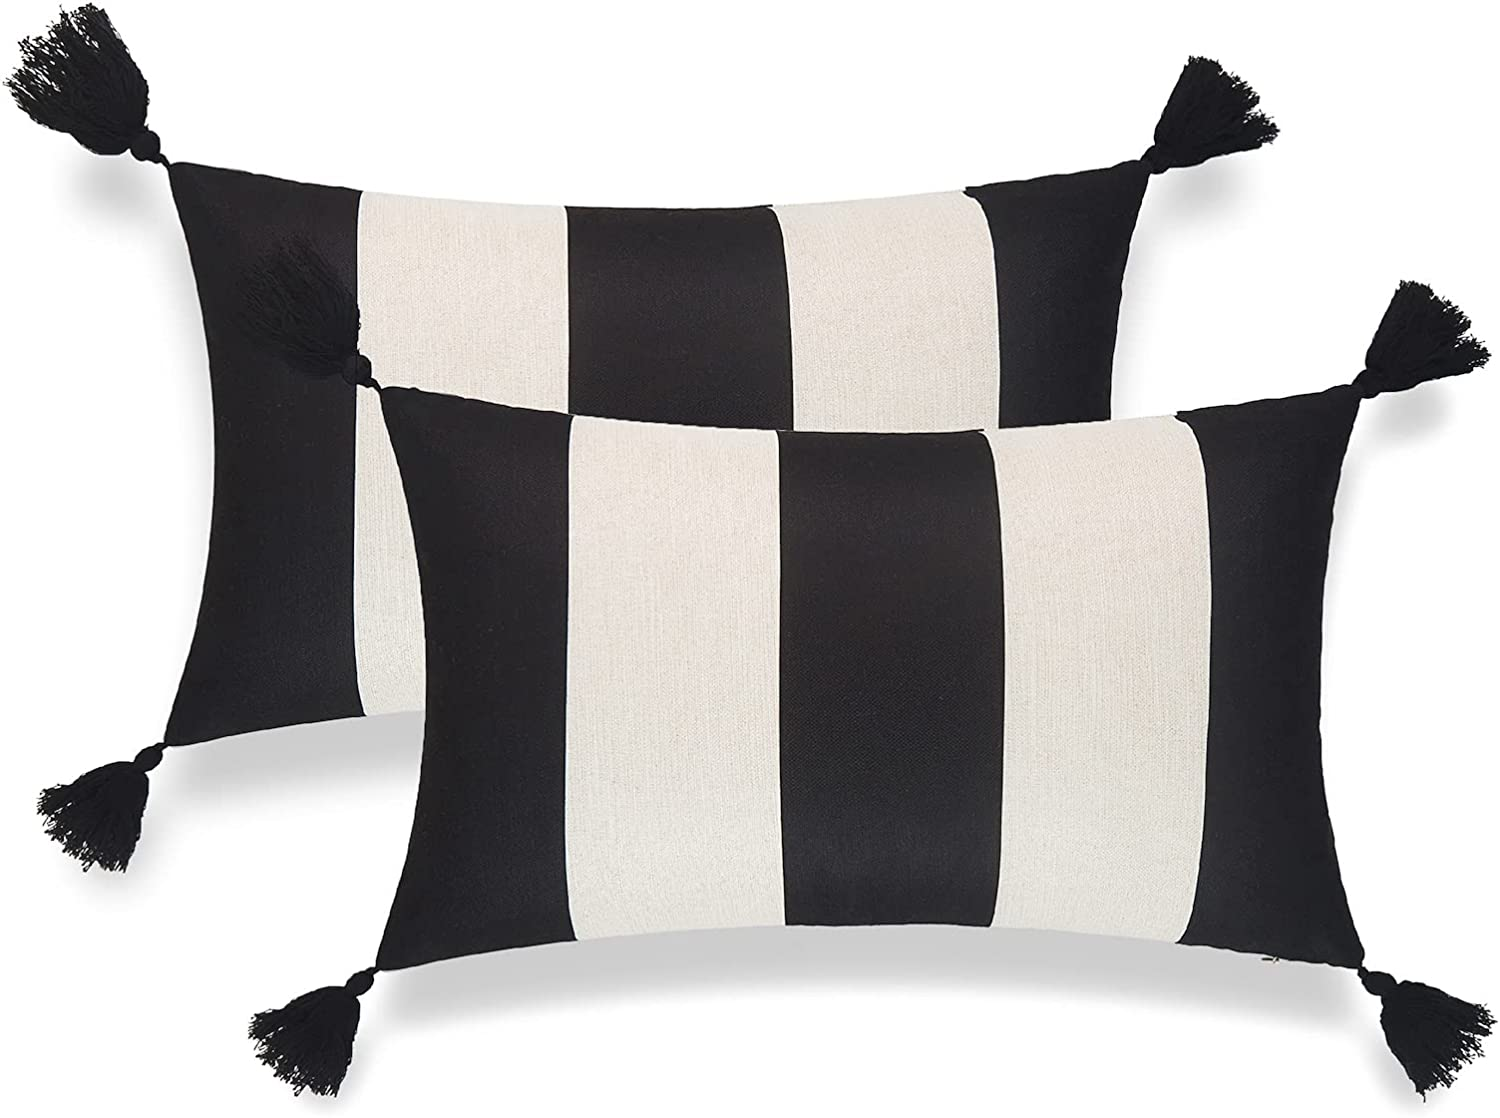 Hofdeco Modern Boho Patio Indoor Outdoor Lumbar Pillow Cover ONLY for Backyard, Couch, Sofa, Black Stripes, 12